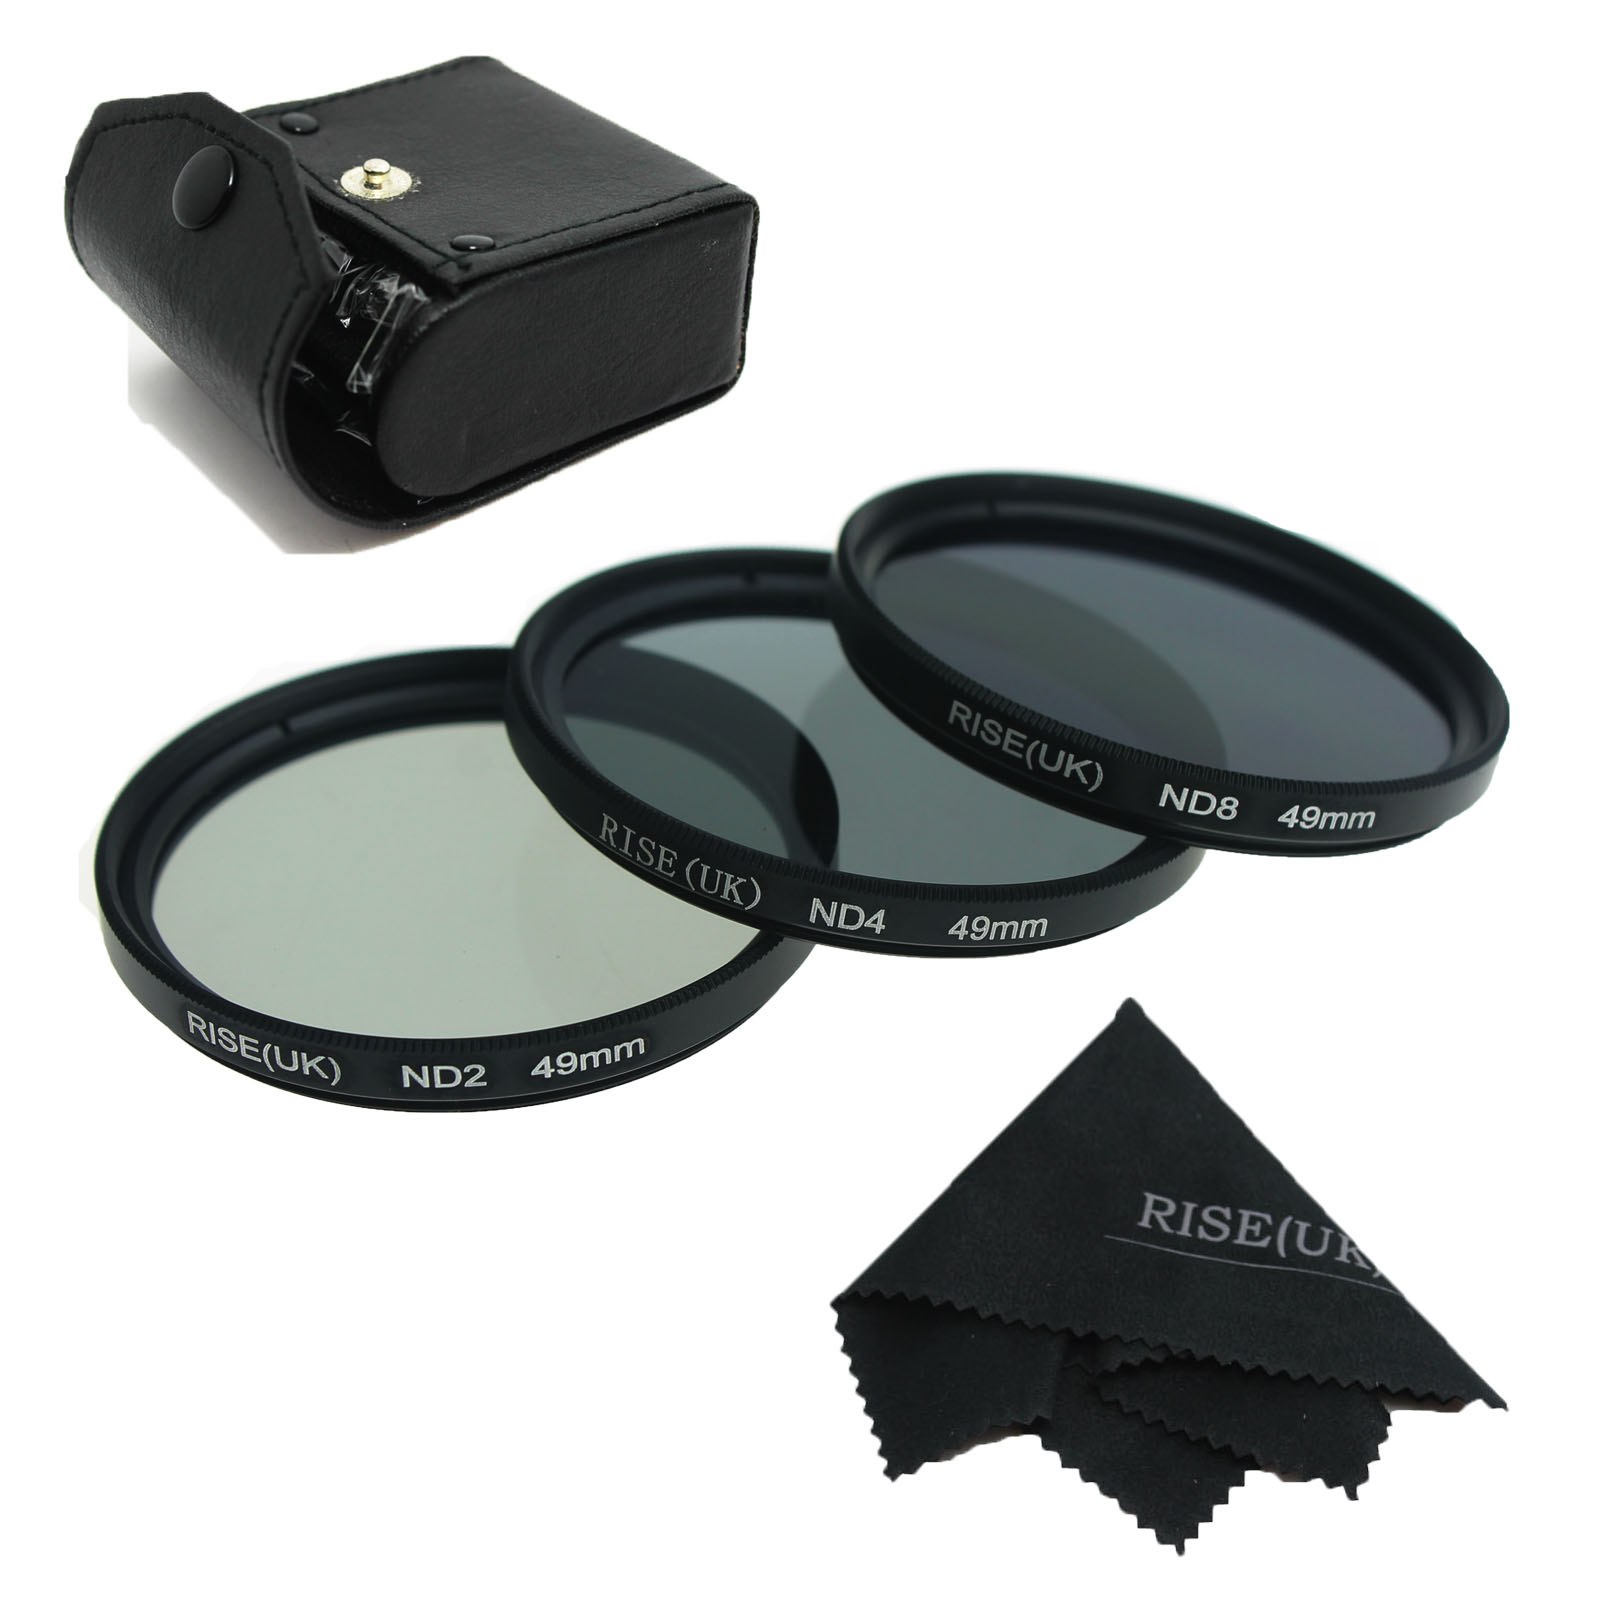 RISE (UK) 49mm 52mm 55mm 58mm 62mm 67mm 72mm 77MM Neutraali tiheyssuodatin Lens Set Kit ND2 ND4 ND8 ND 2 4 8